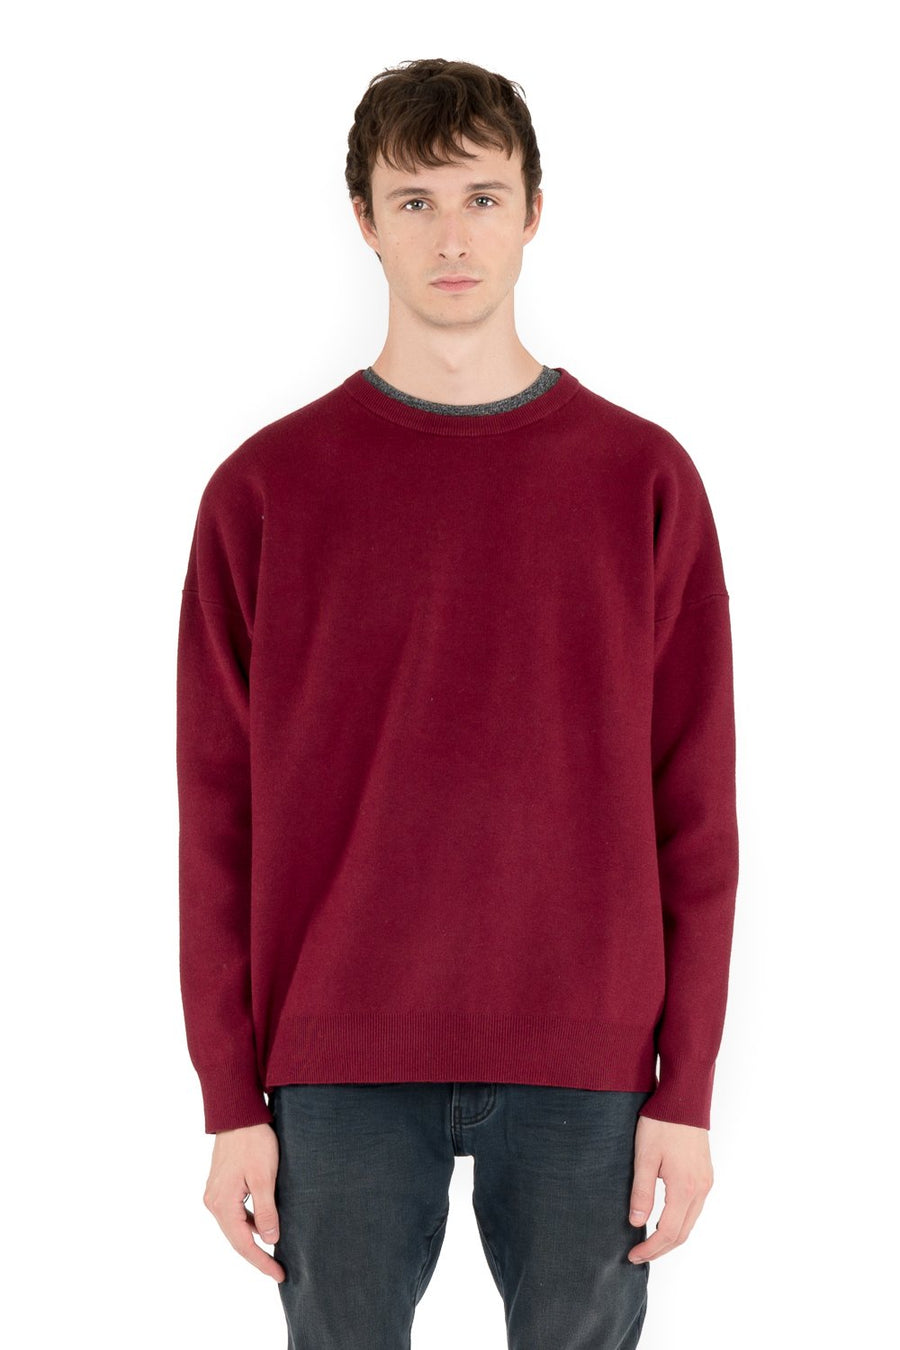 kuwalla tee stretch knitted crew port